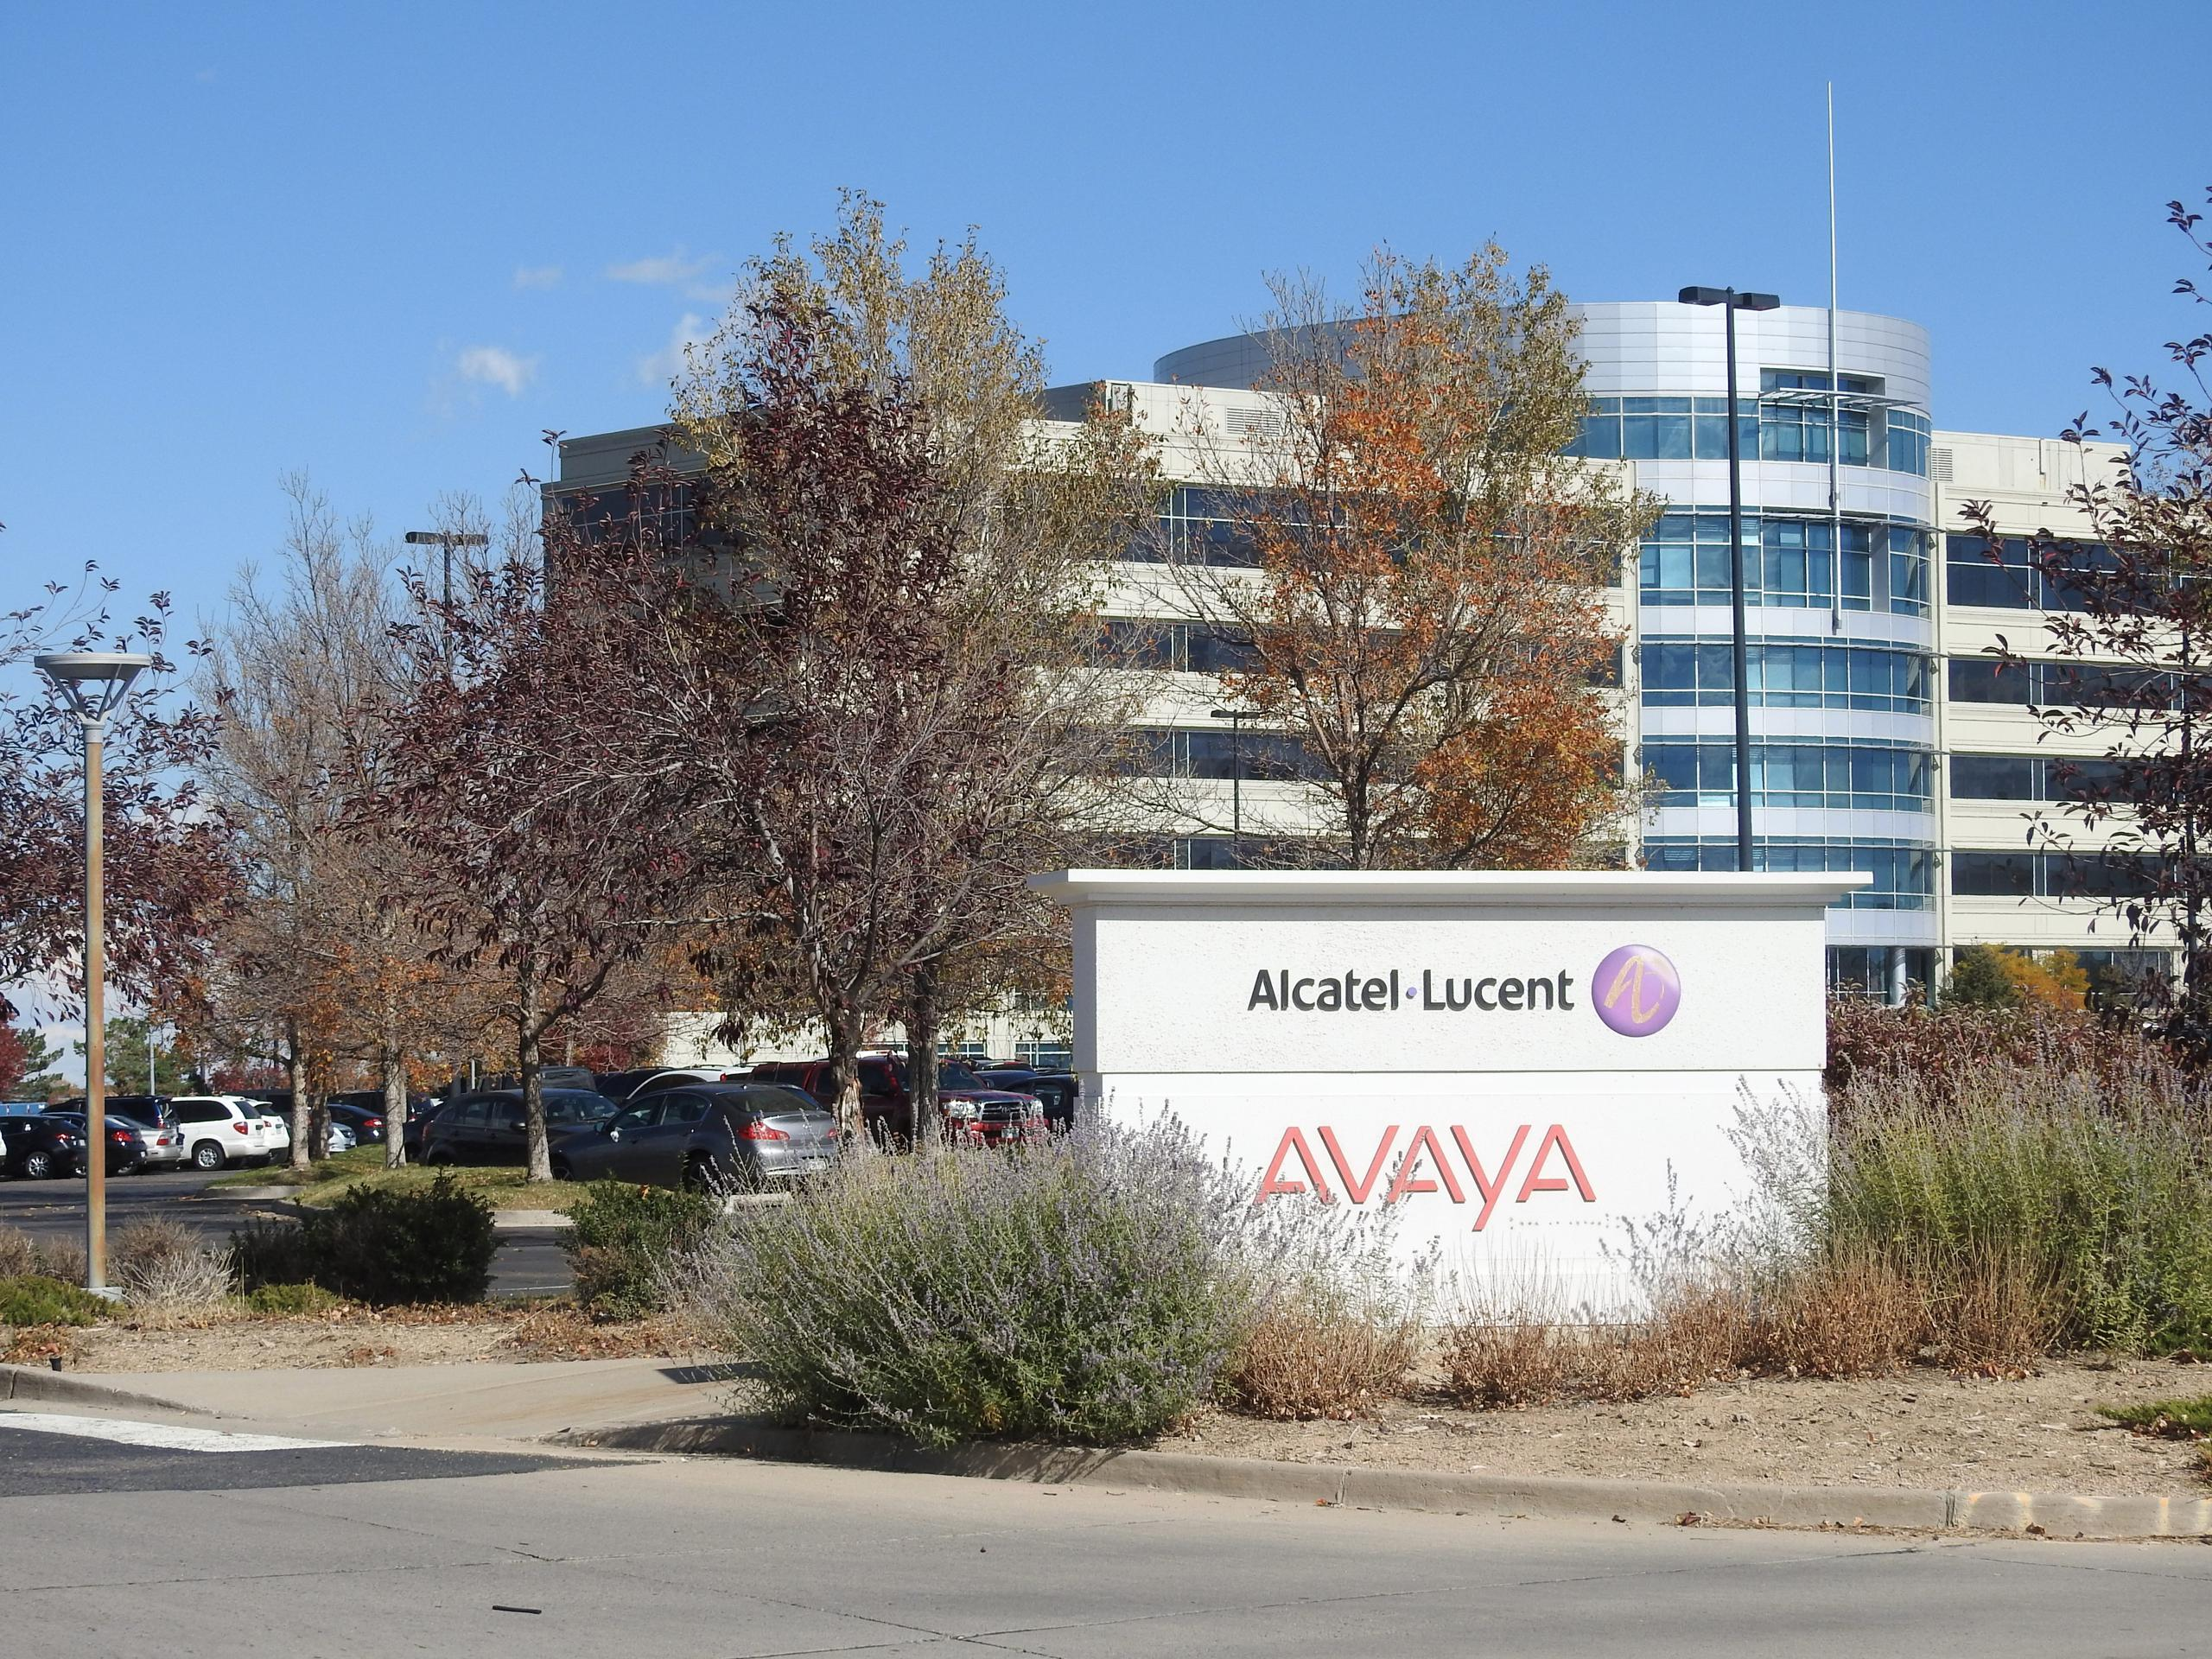 Alcatel-Lucent office in Highlands Ranch, Colorado.